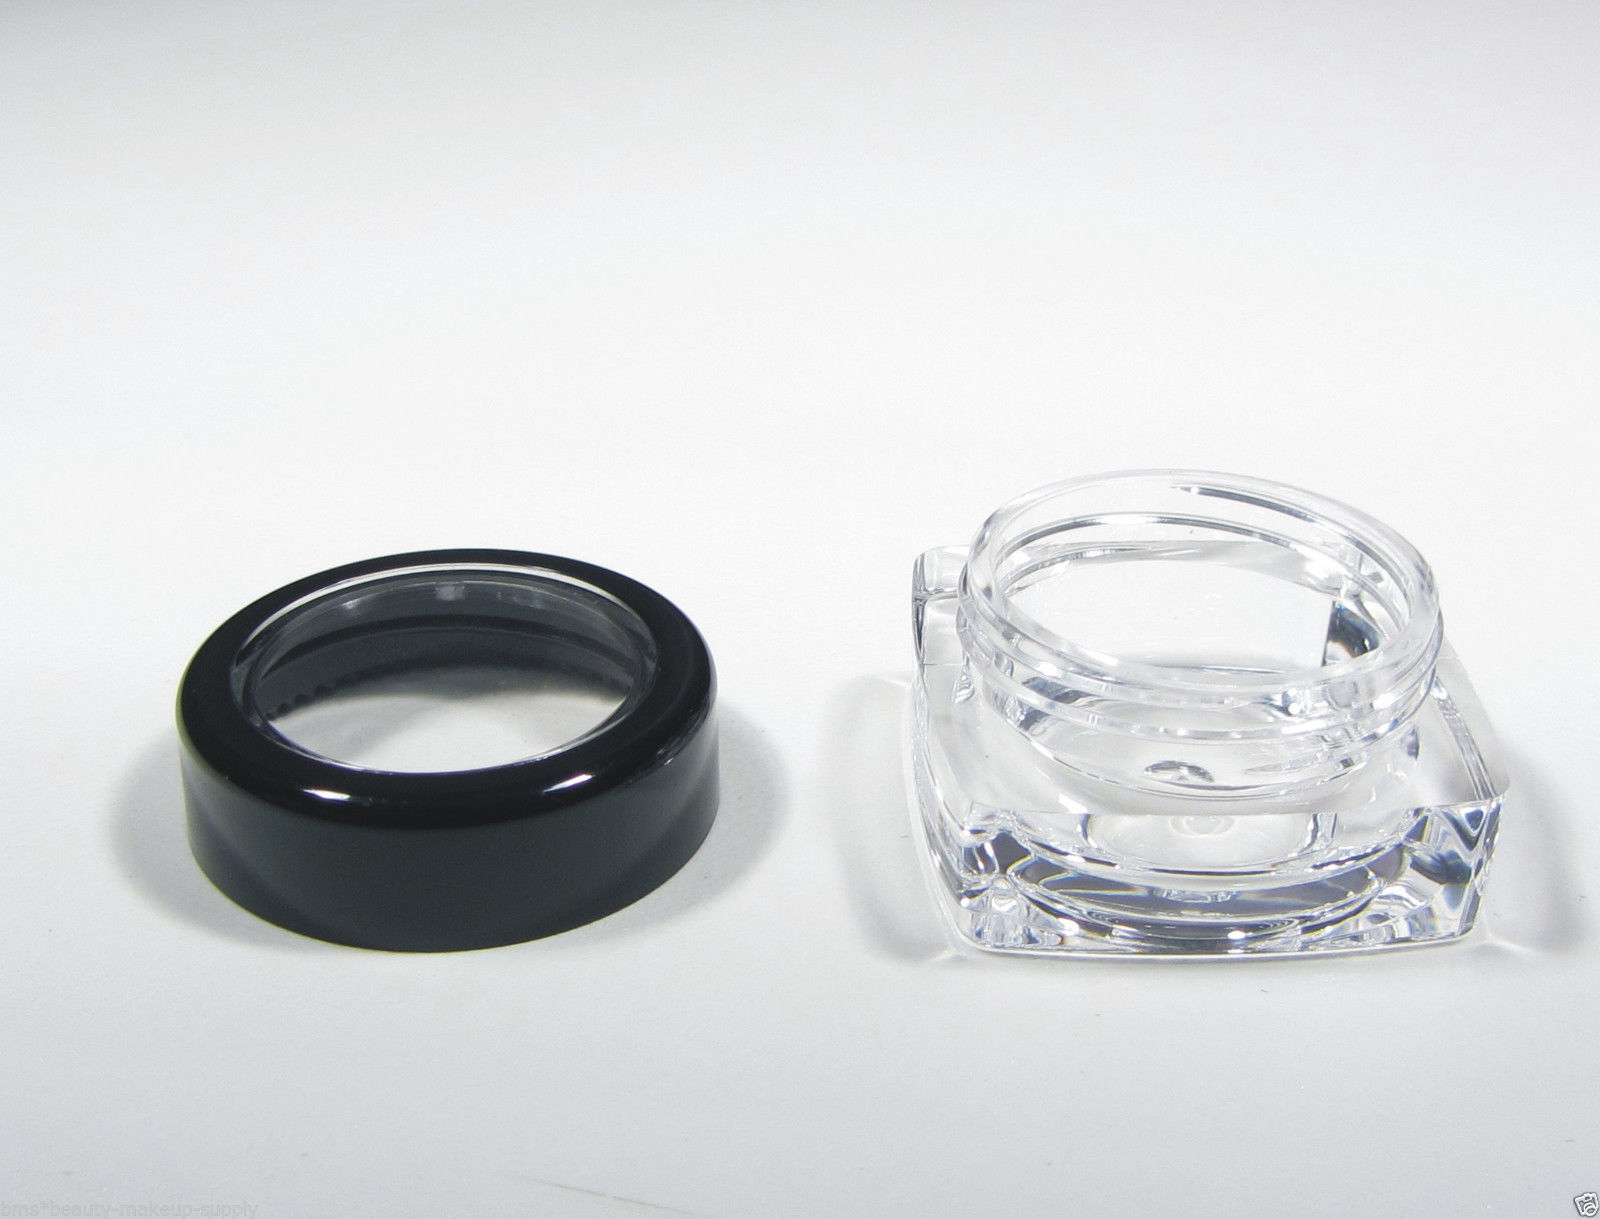 Square Cosmetic Jars Black Acryic Lid 50 Thick Wall Containers 5 Gram 5 ml #3039 image 7